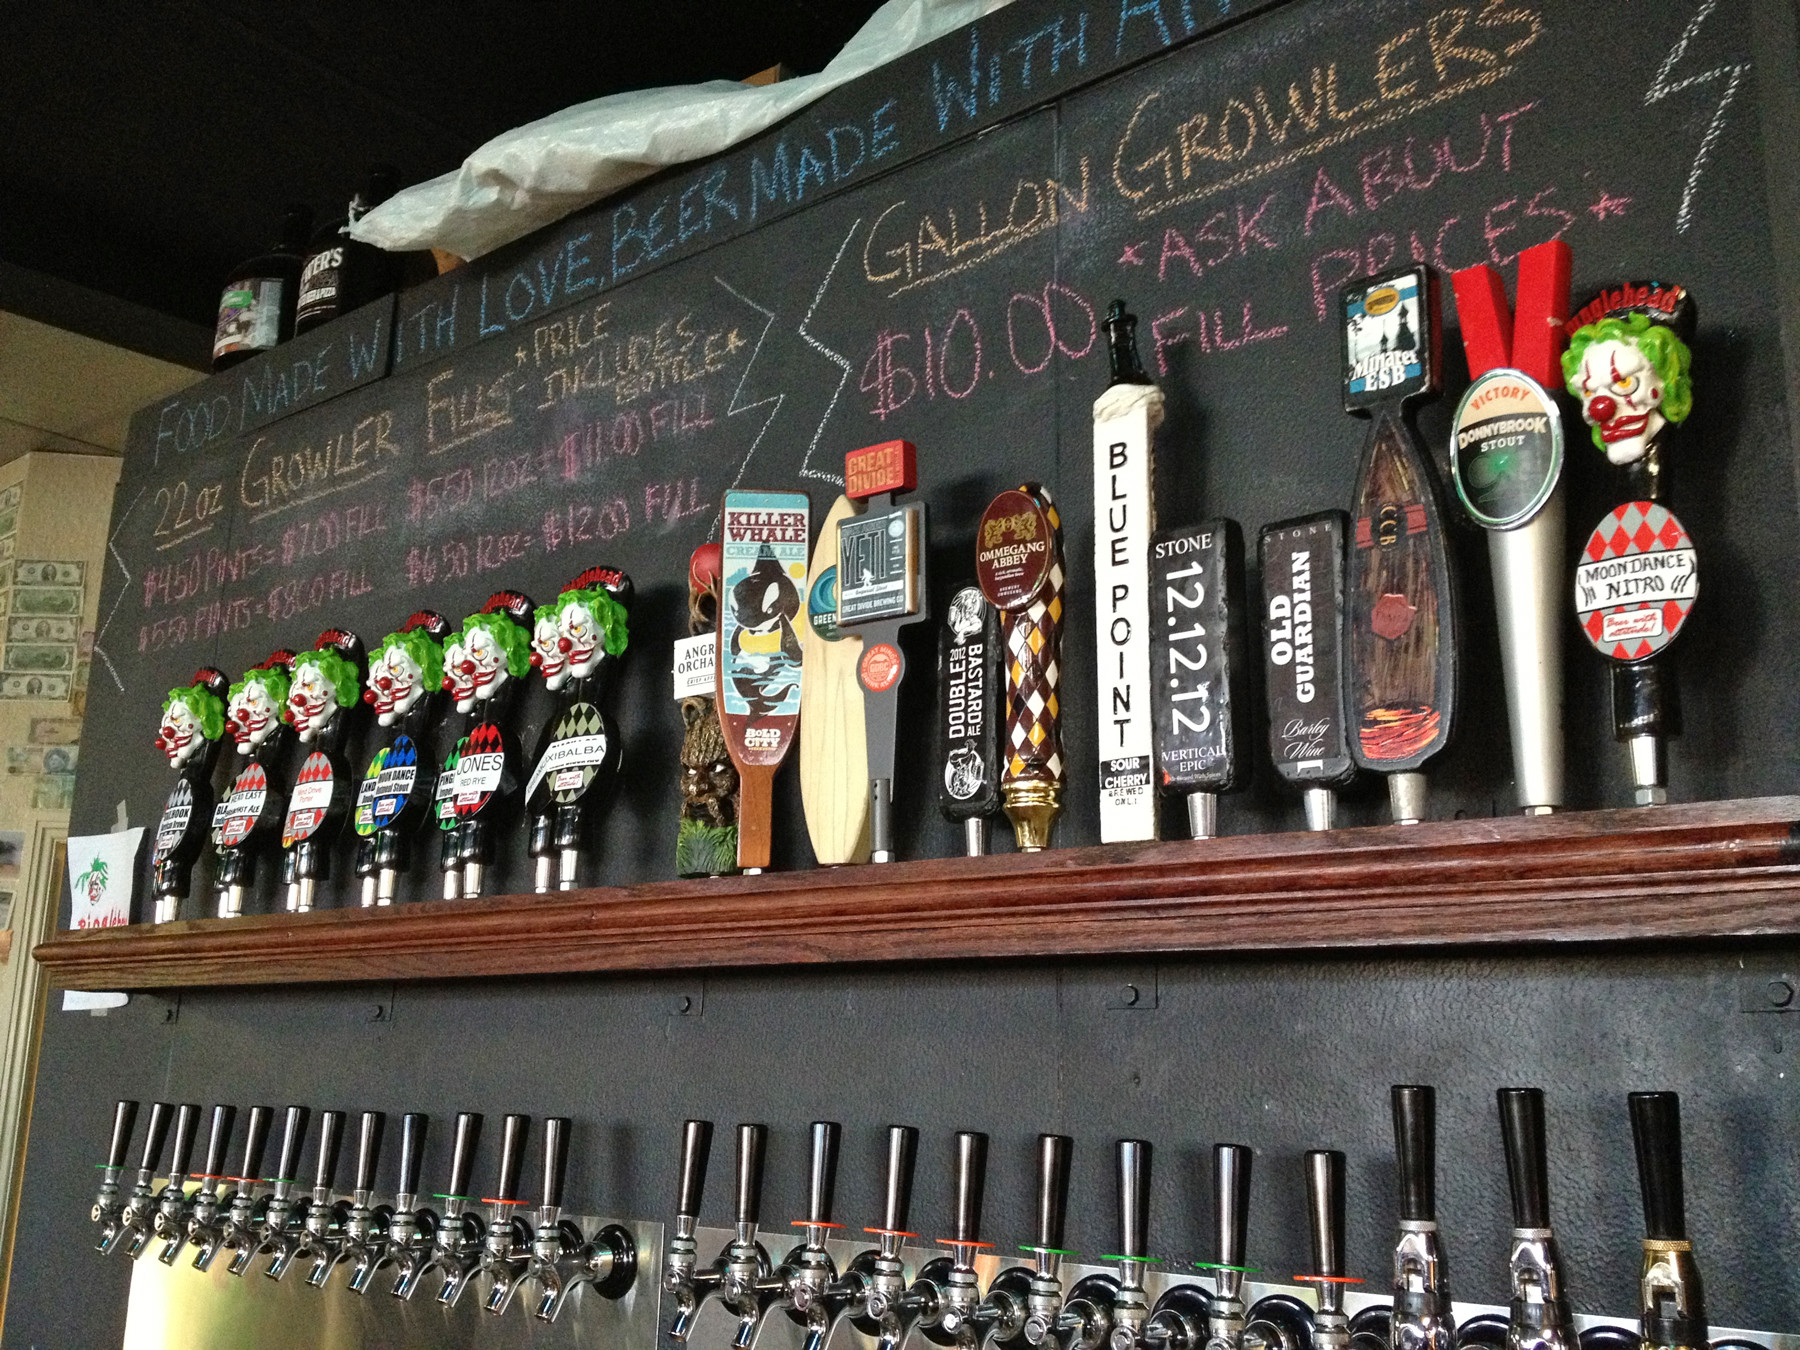 With 11 taps of Brewer's own Pinglehead beers, and local favorites from Bold City Brewery, Intuition Ale Works and Green Room Brewing, there's something for every hops-lover.